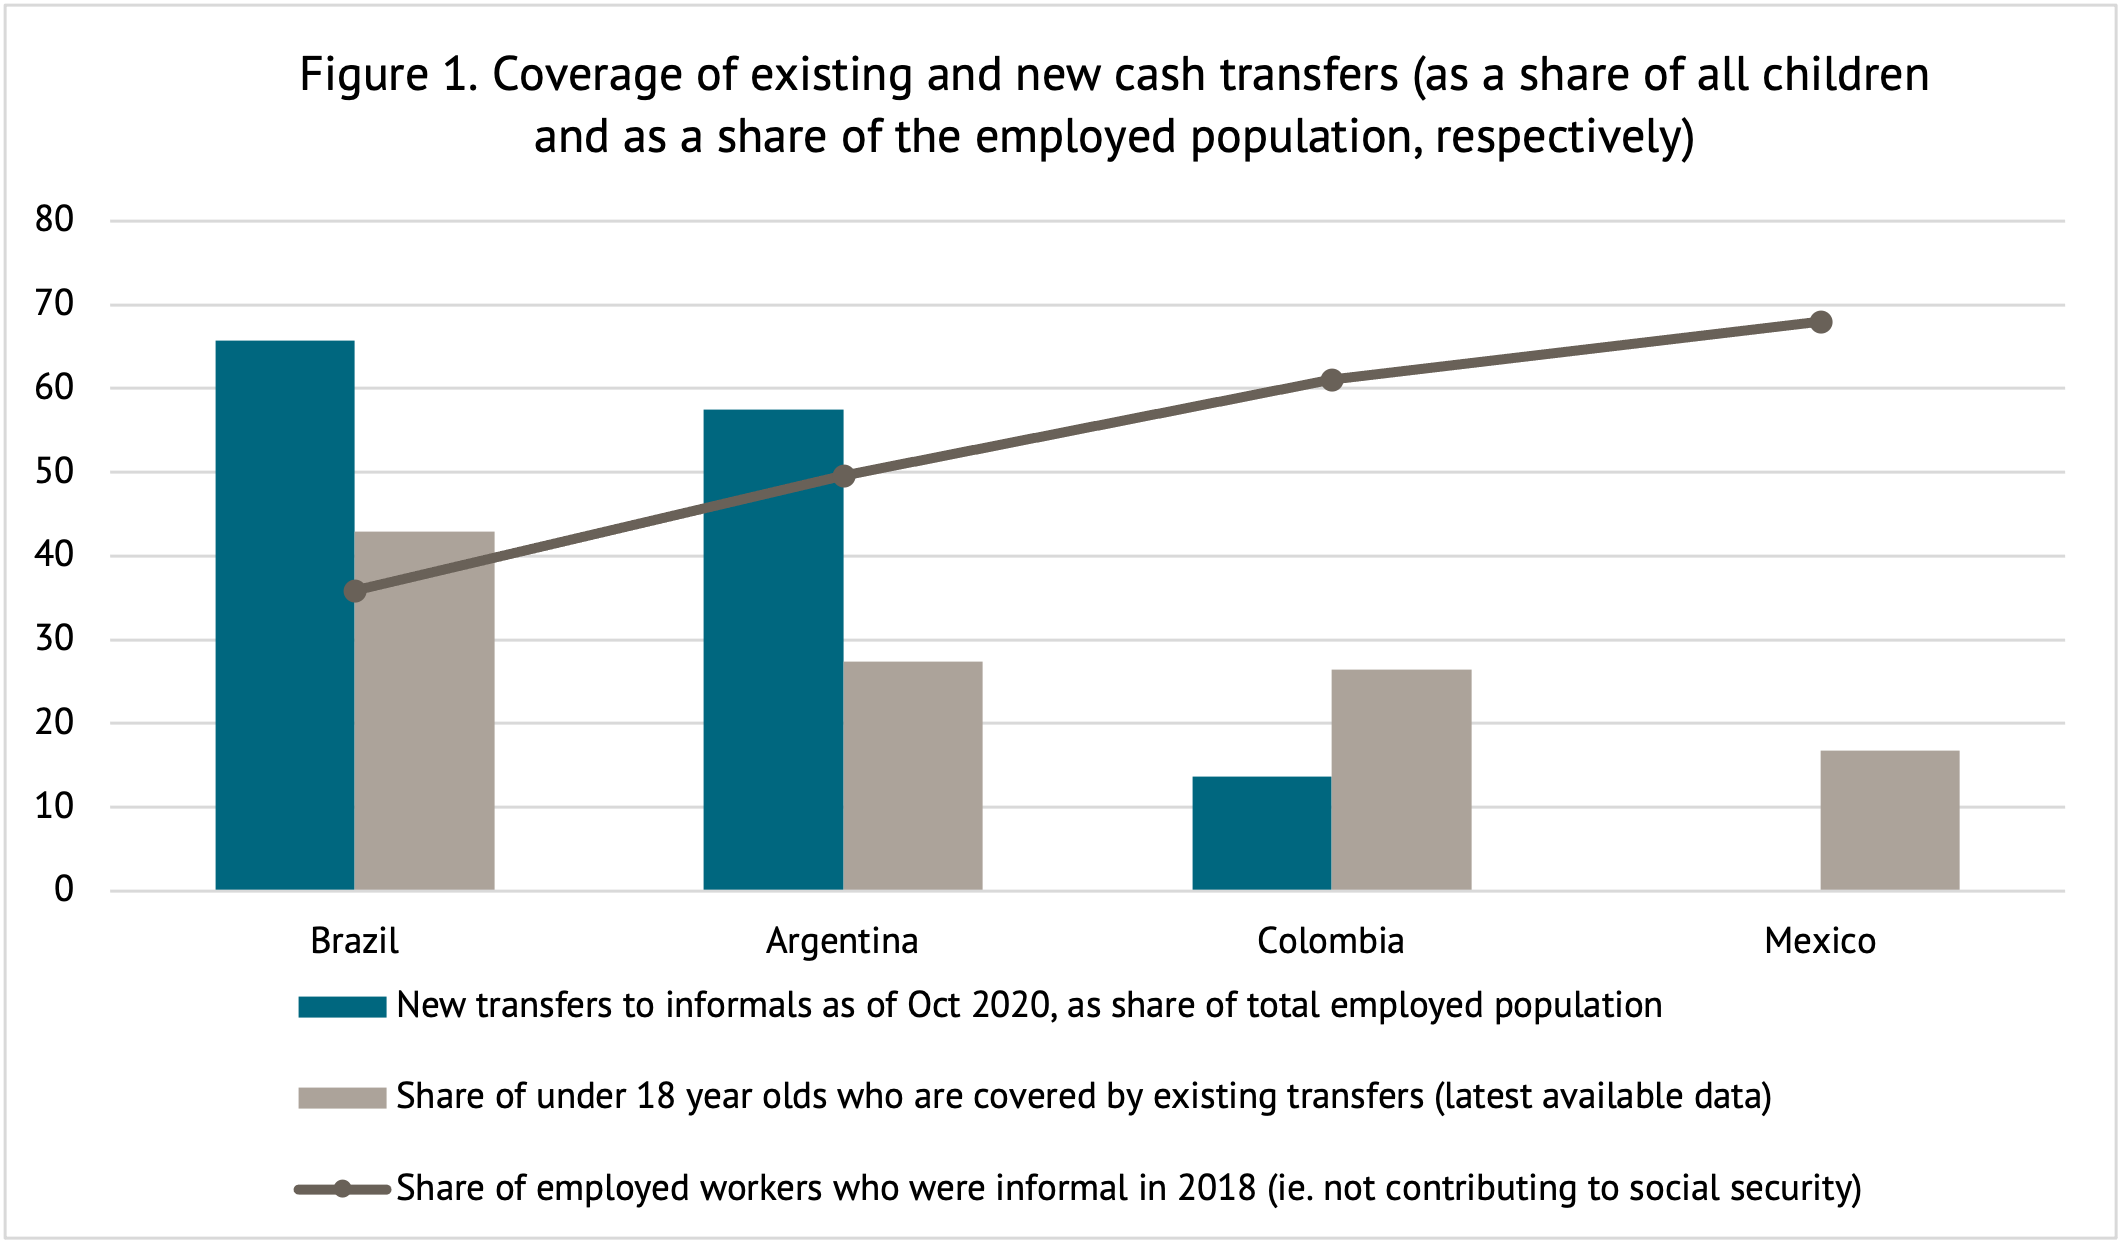 A figure indicating that there is considerable variation in the coverage of both existing and new cash transfer programs among children and the total employed population.